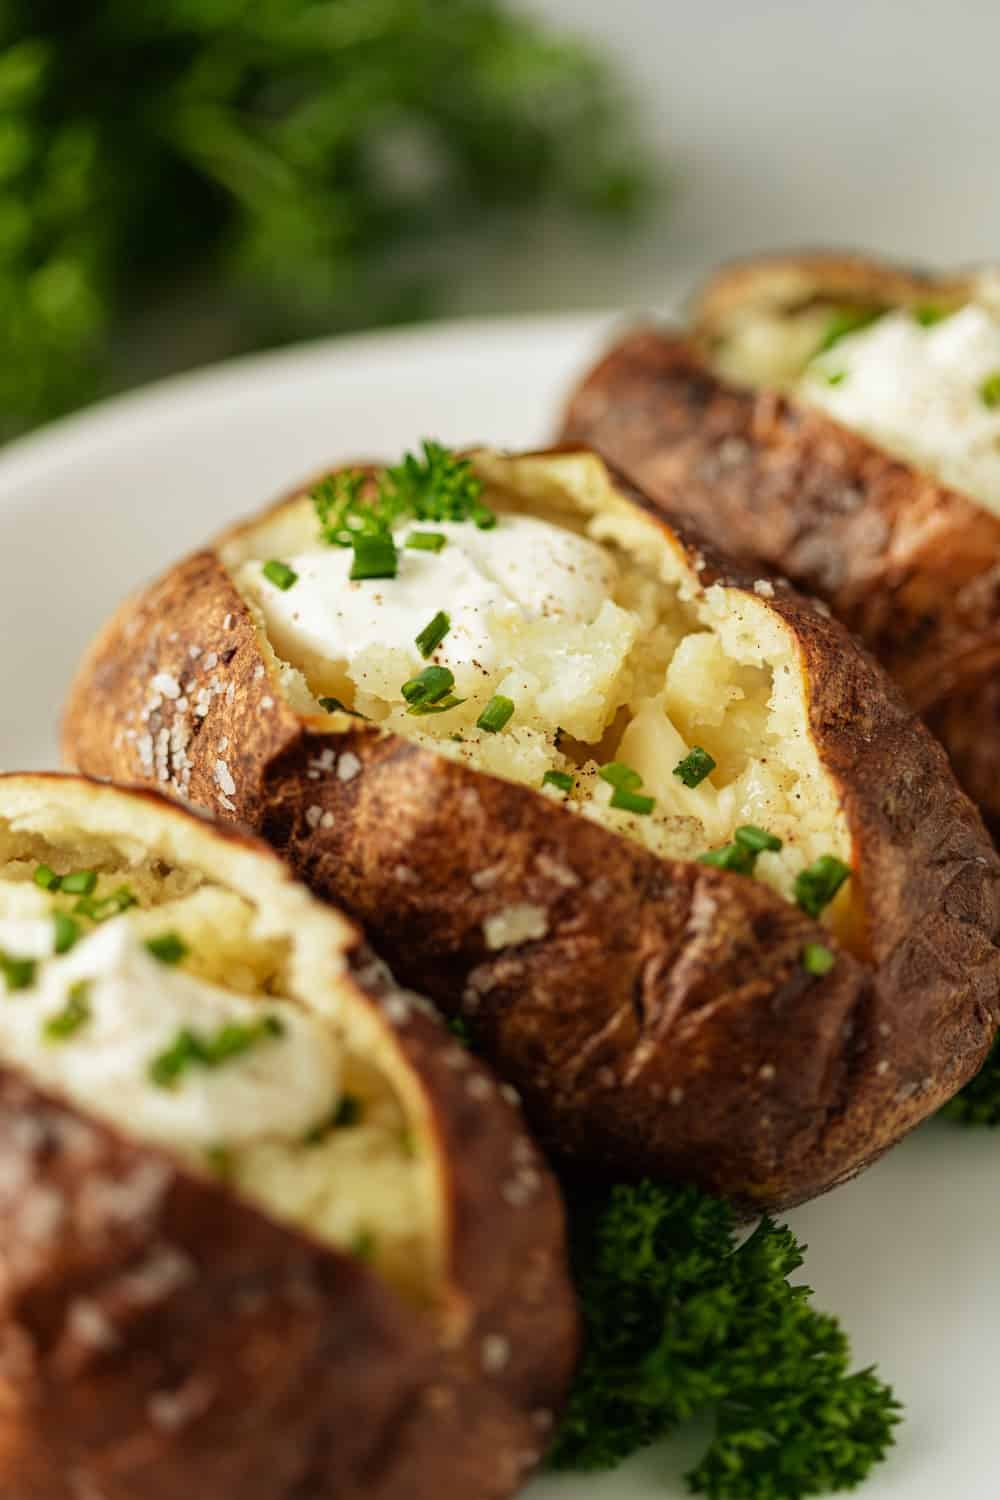 A close up of a plate of a Baked potato, sliced with sour cream and chives on top